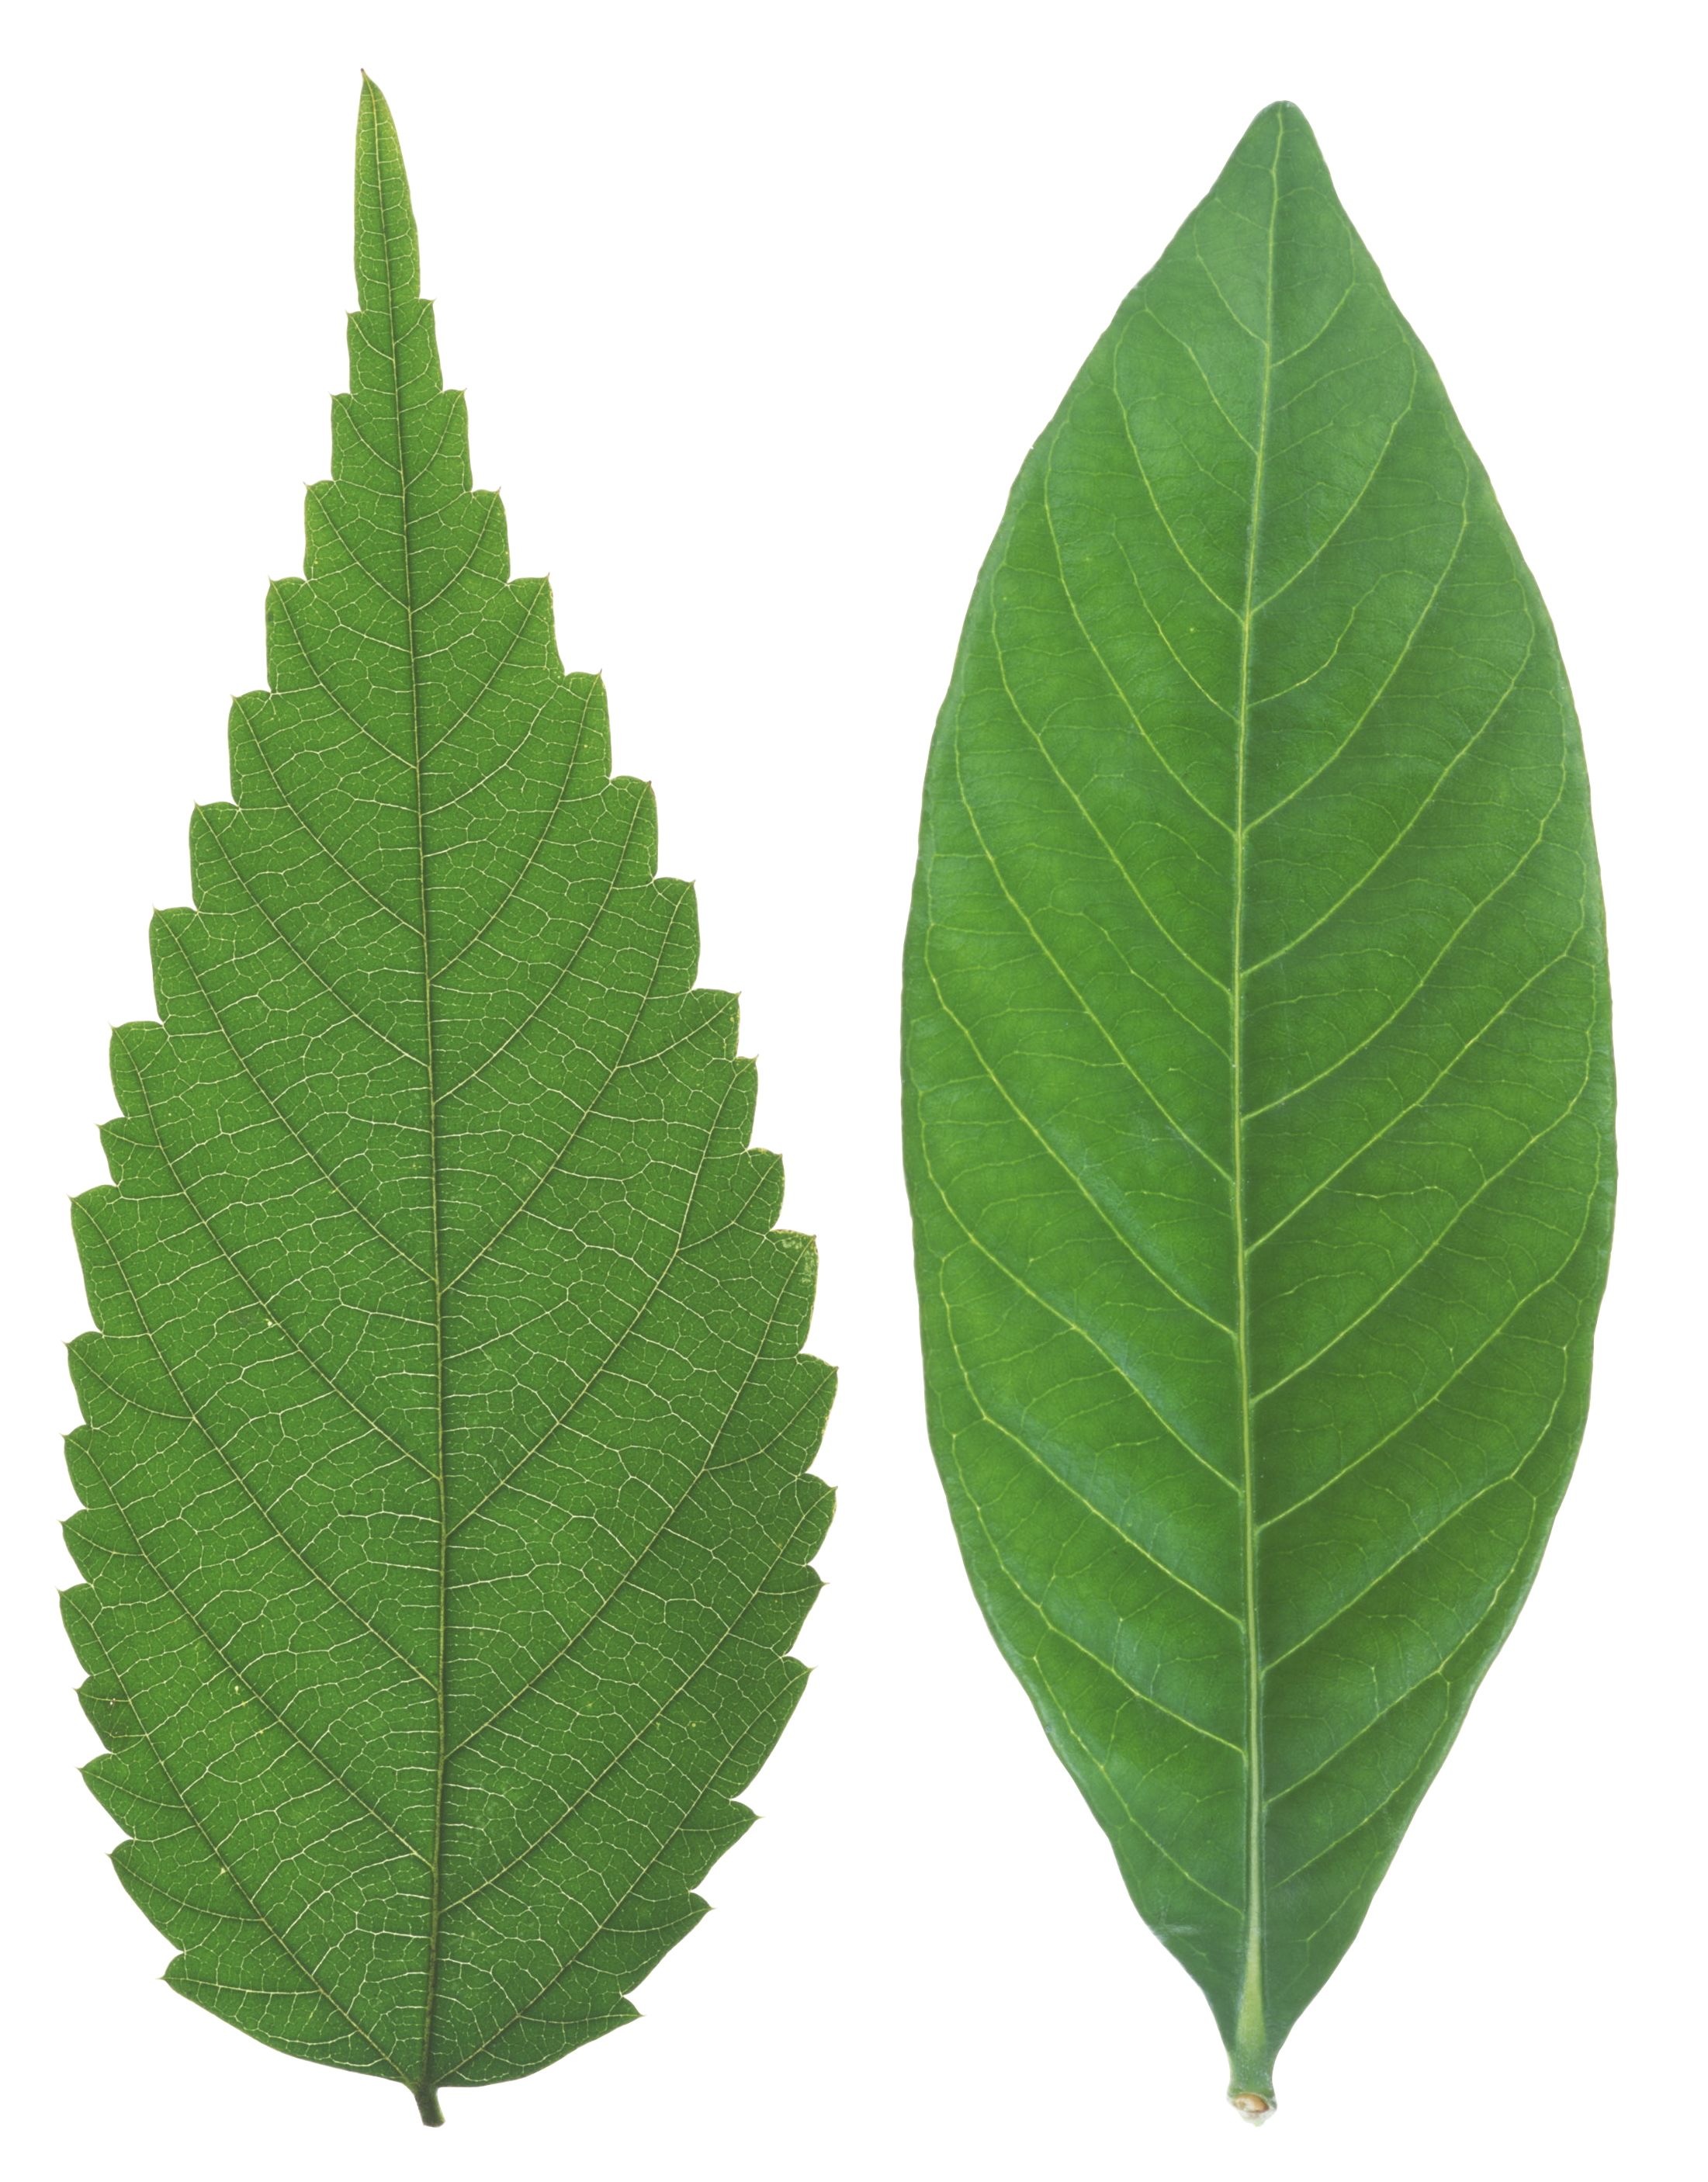 Green Leaves Png Image Green Leaves Leaf Photography Plant Texture